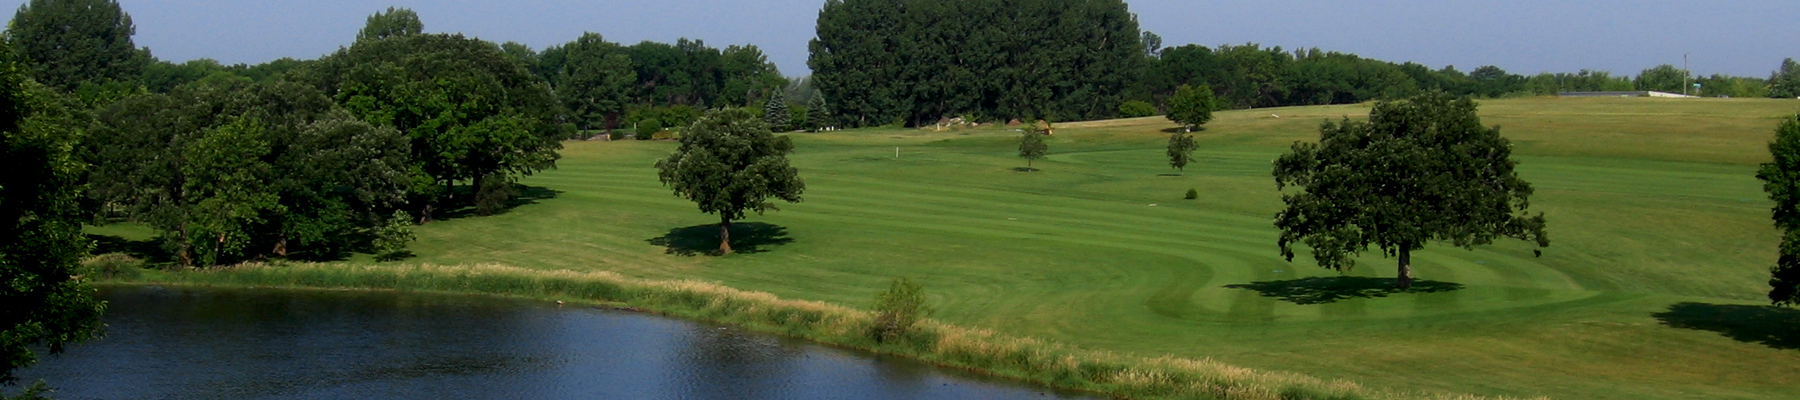 fergus falls golf